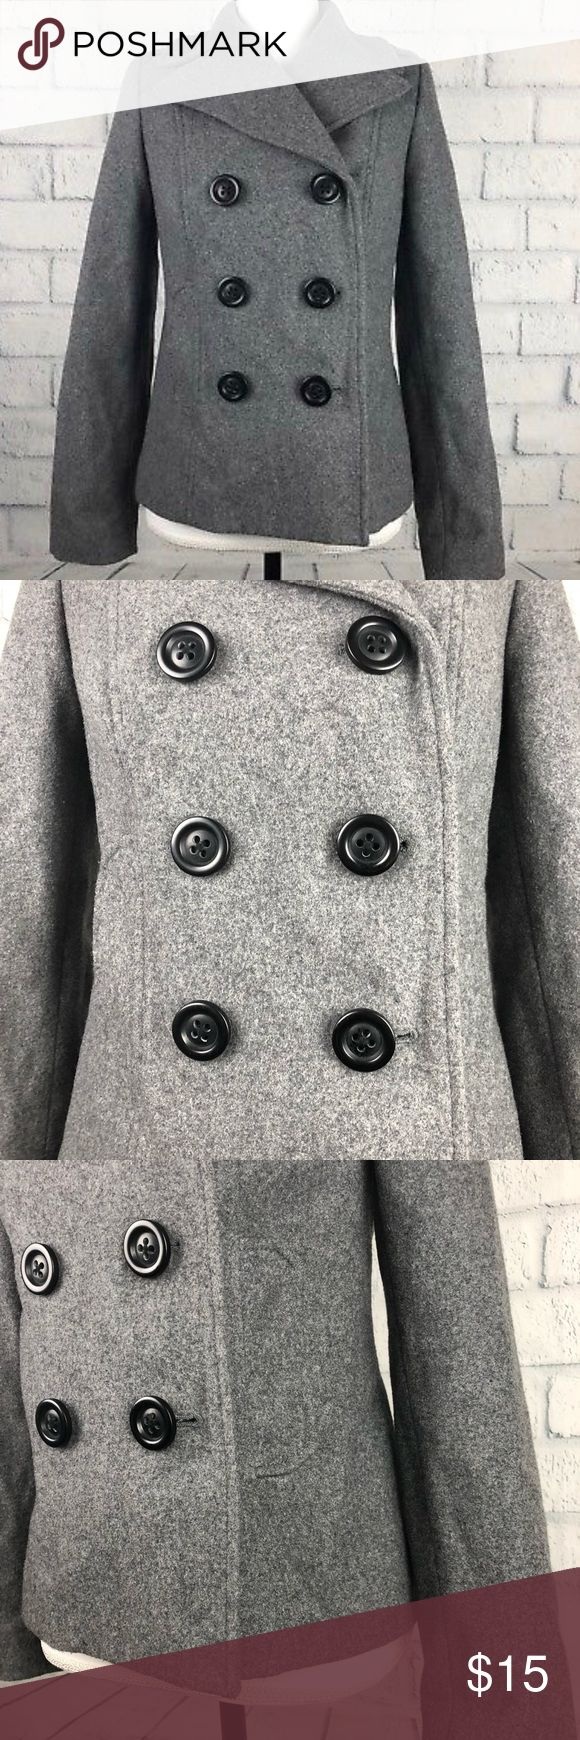 Old navy peacoat gray XS lined Old Navy women peacoat short gray size XS 3 buttons pockets #PM  Approx. flay lay measurements: pit to pit: 17' arm: 24' back neckline to bottom: 23' Pictures may appear darker or lighter due to lighting and camera. Please email with questions. Thanks for looking! Old Navy Jackets & Coats Pea Coats